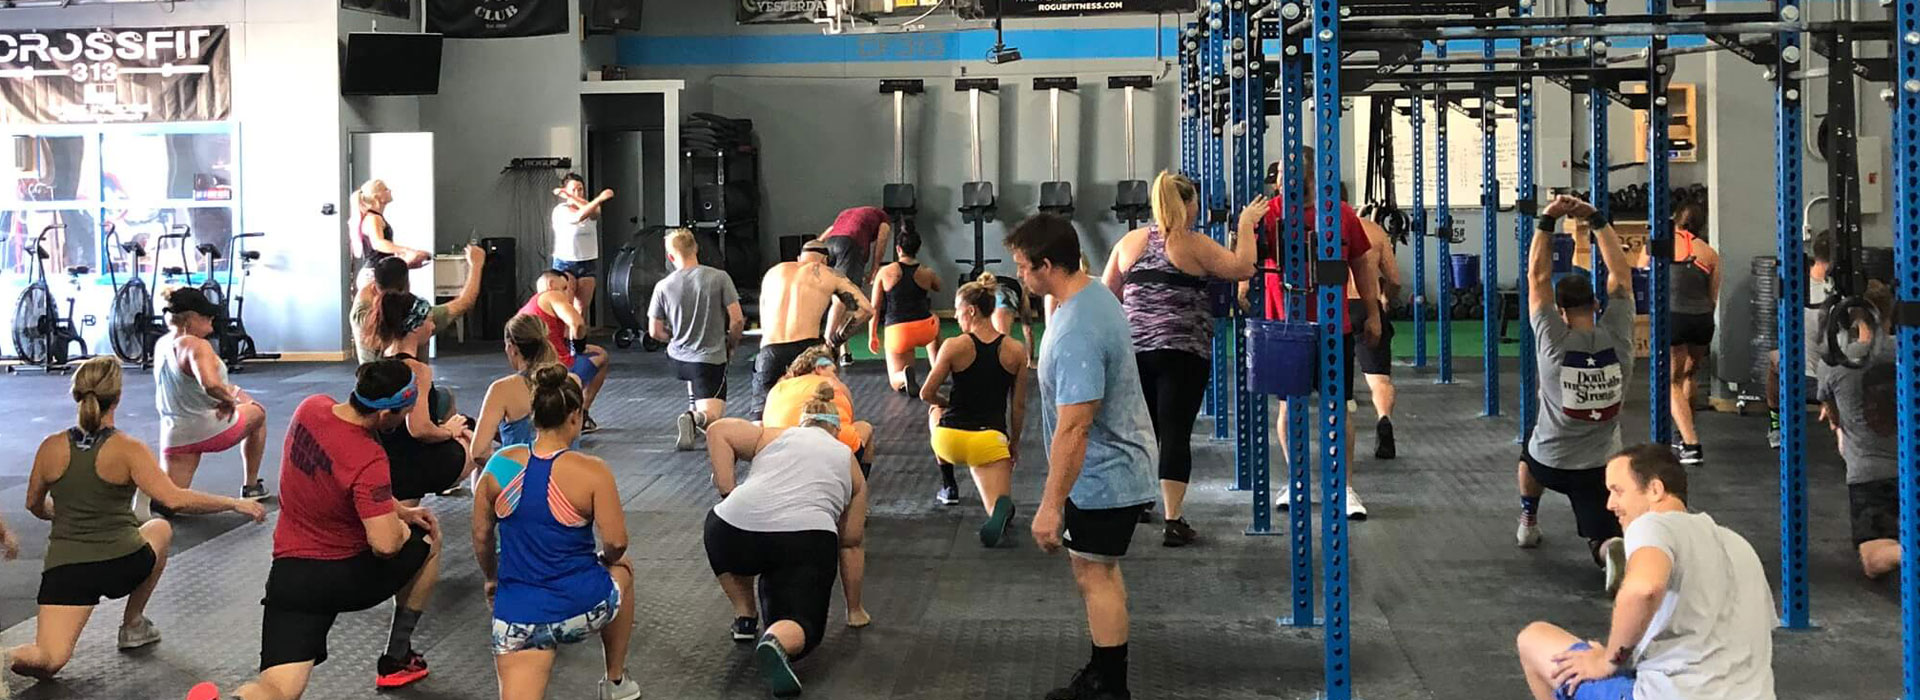 A Gym In Burleson TX That Can Help With Weight loss & Dieting